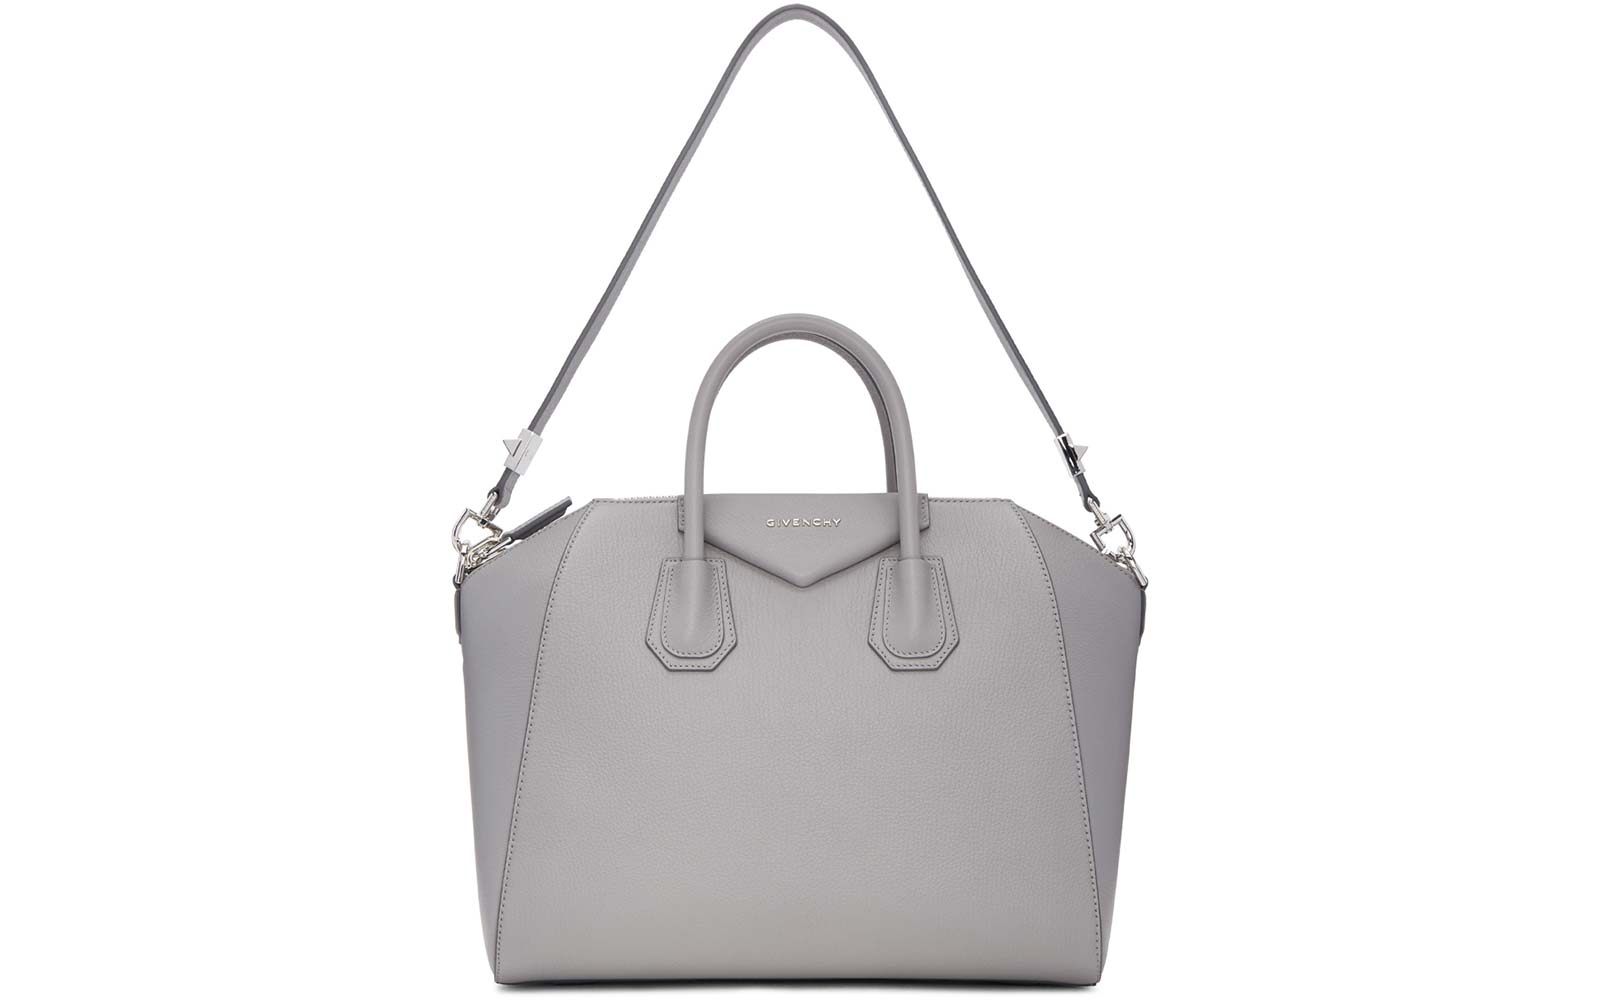 Givenchy grey bag